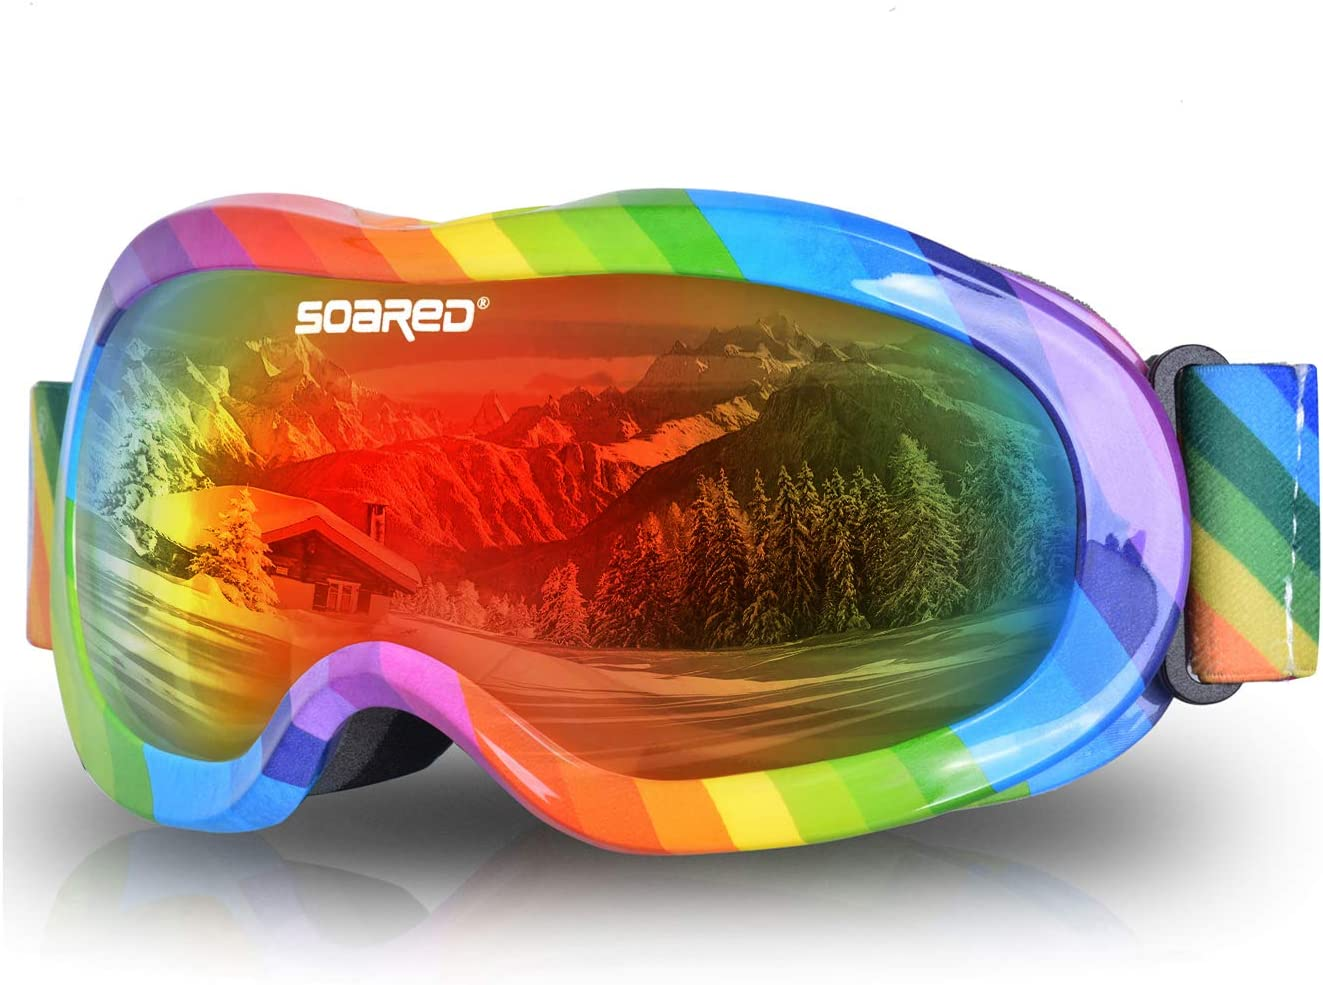 Soared Kids Ski Goggles Winter Snow Snowboard Glasses Dual Lens UV Protection Anti Fog OTG Skating Goggles for Youth Boys Girls